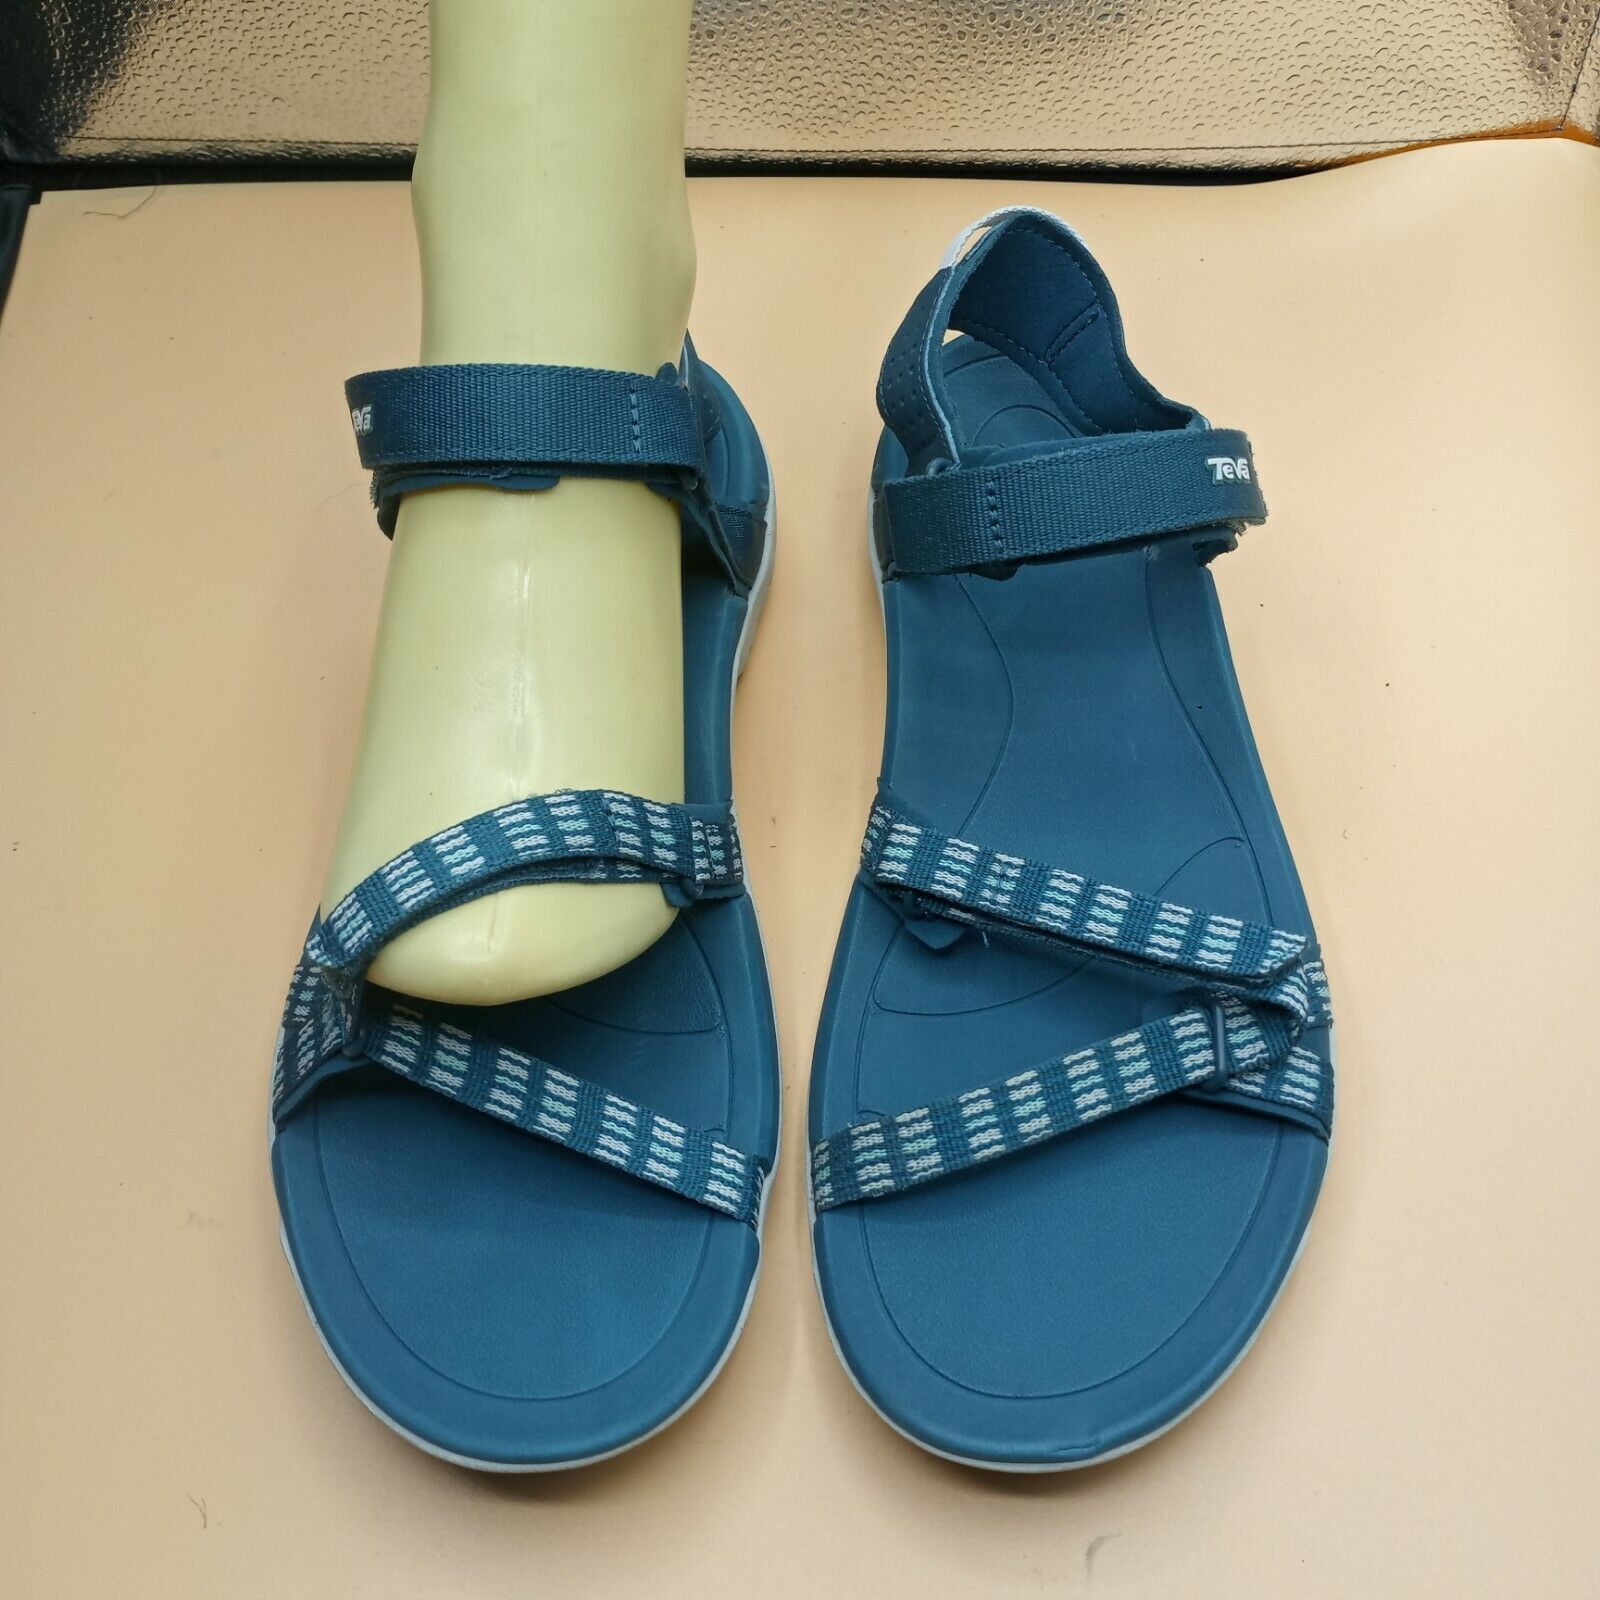 Teva Women Sandals 11 - image 3